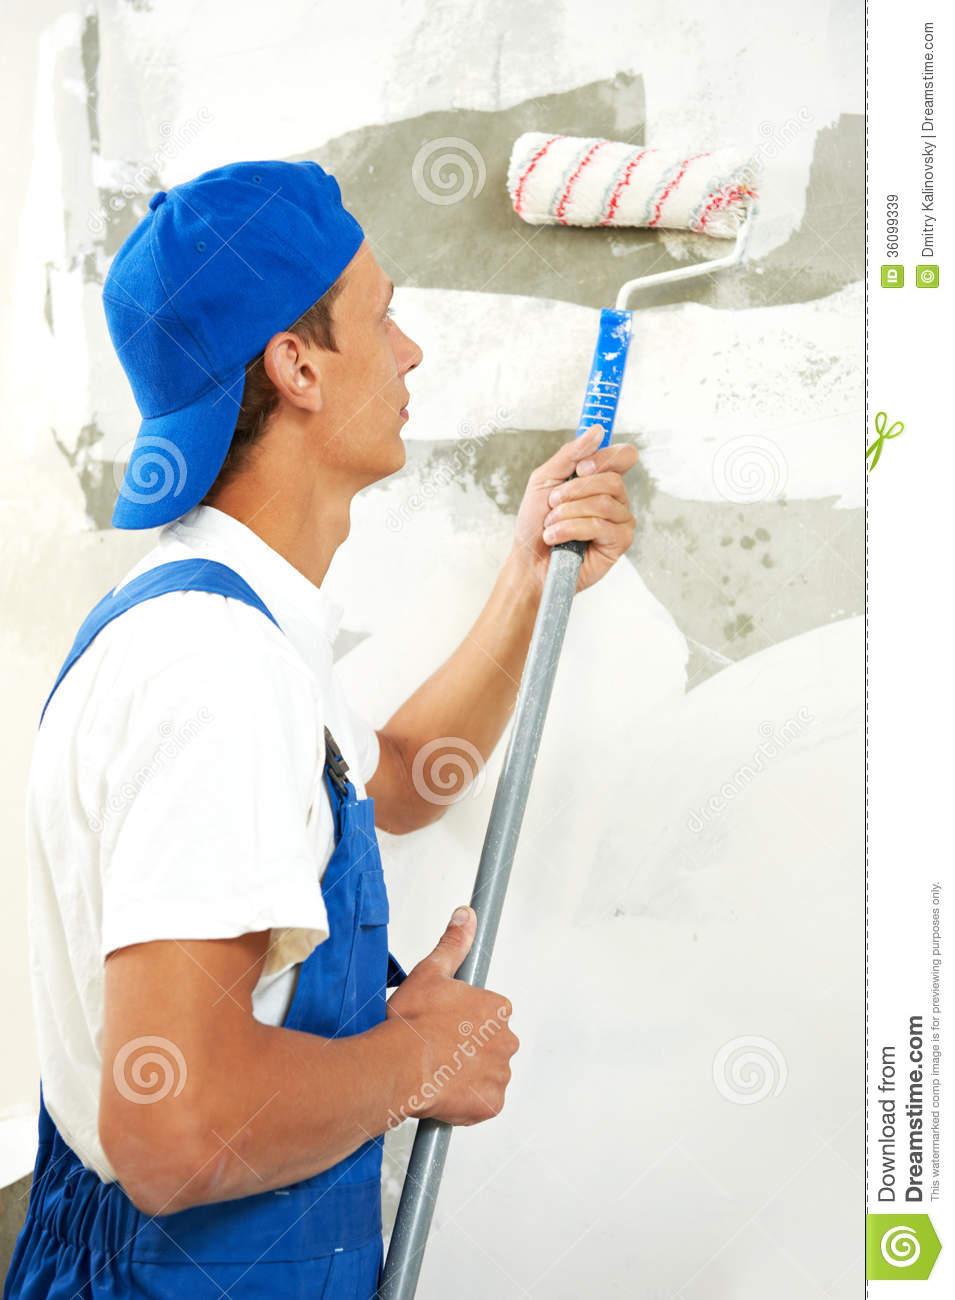 Painter And Decorator Prices >> Painter At Home Renovation Work With Prime Royalty Free Stock Images - Image: 36099339